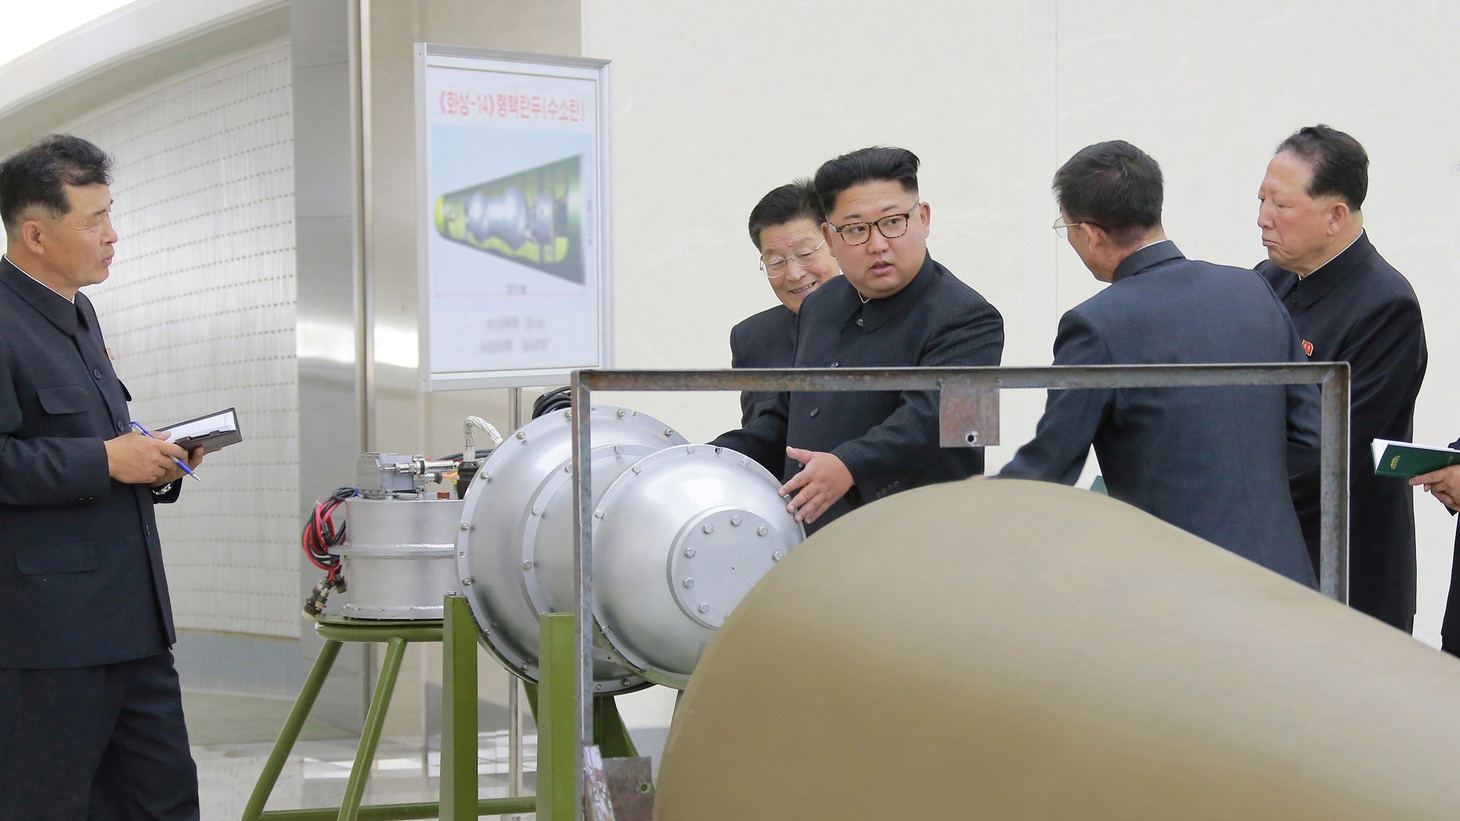 North Korean leader Kim Jong Un provides guidance with Ri Hong Sop (2nd L) and Hong Sung Mu (2nd R) on a nuclear weapons program in this undated photo released by North Korea's Korean Central News Agency in Pyongyang September 3, 2017.